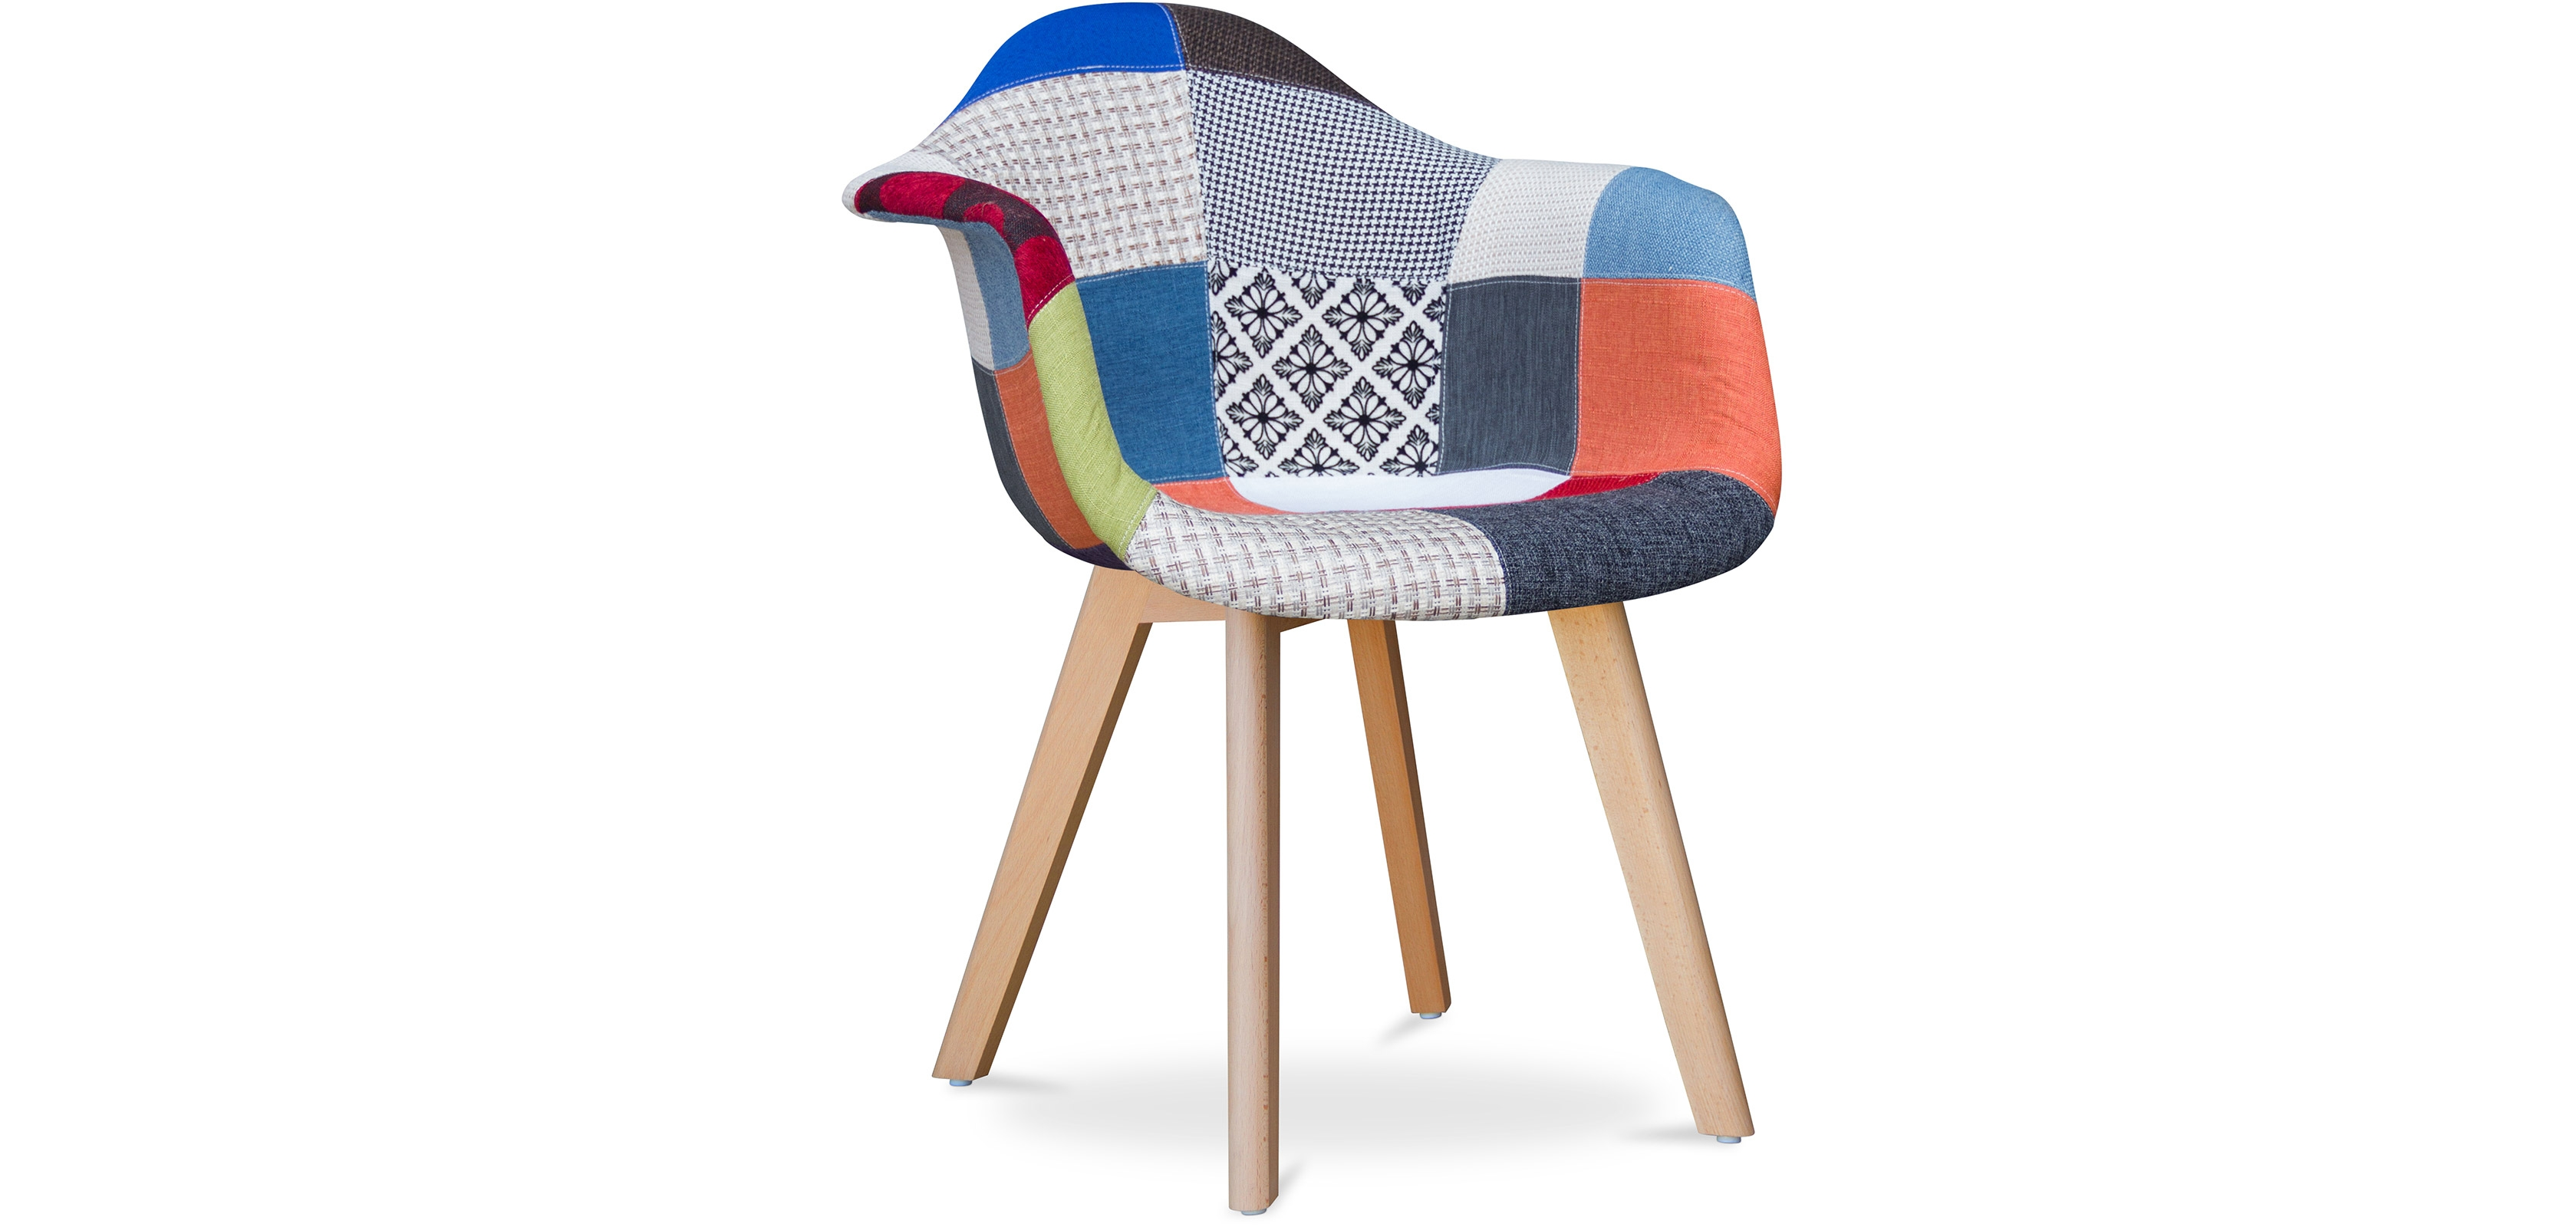 Buy Design Dawood chair - Patchwork Piti Multicolour 59266 - in the UK